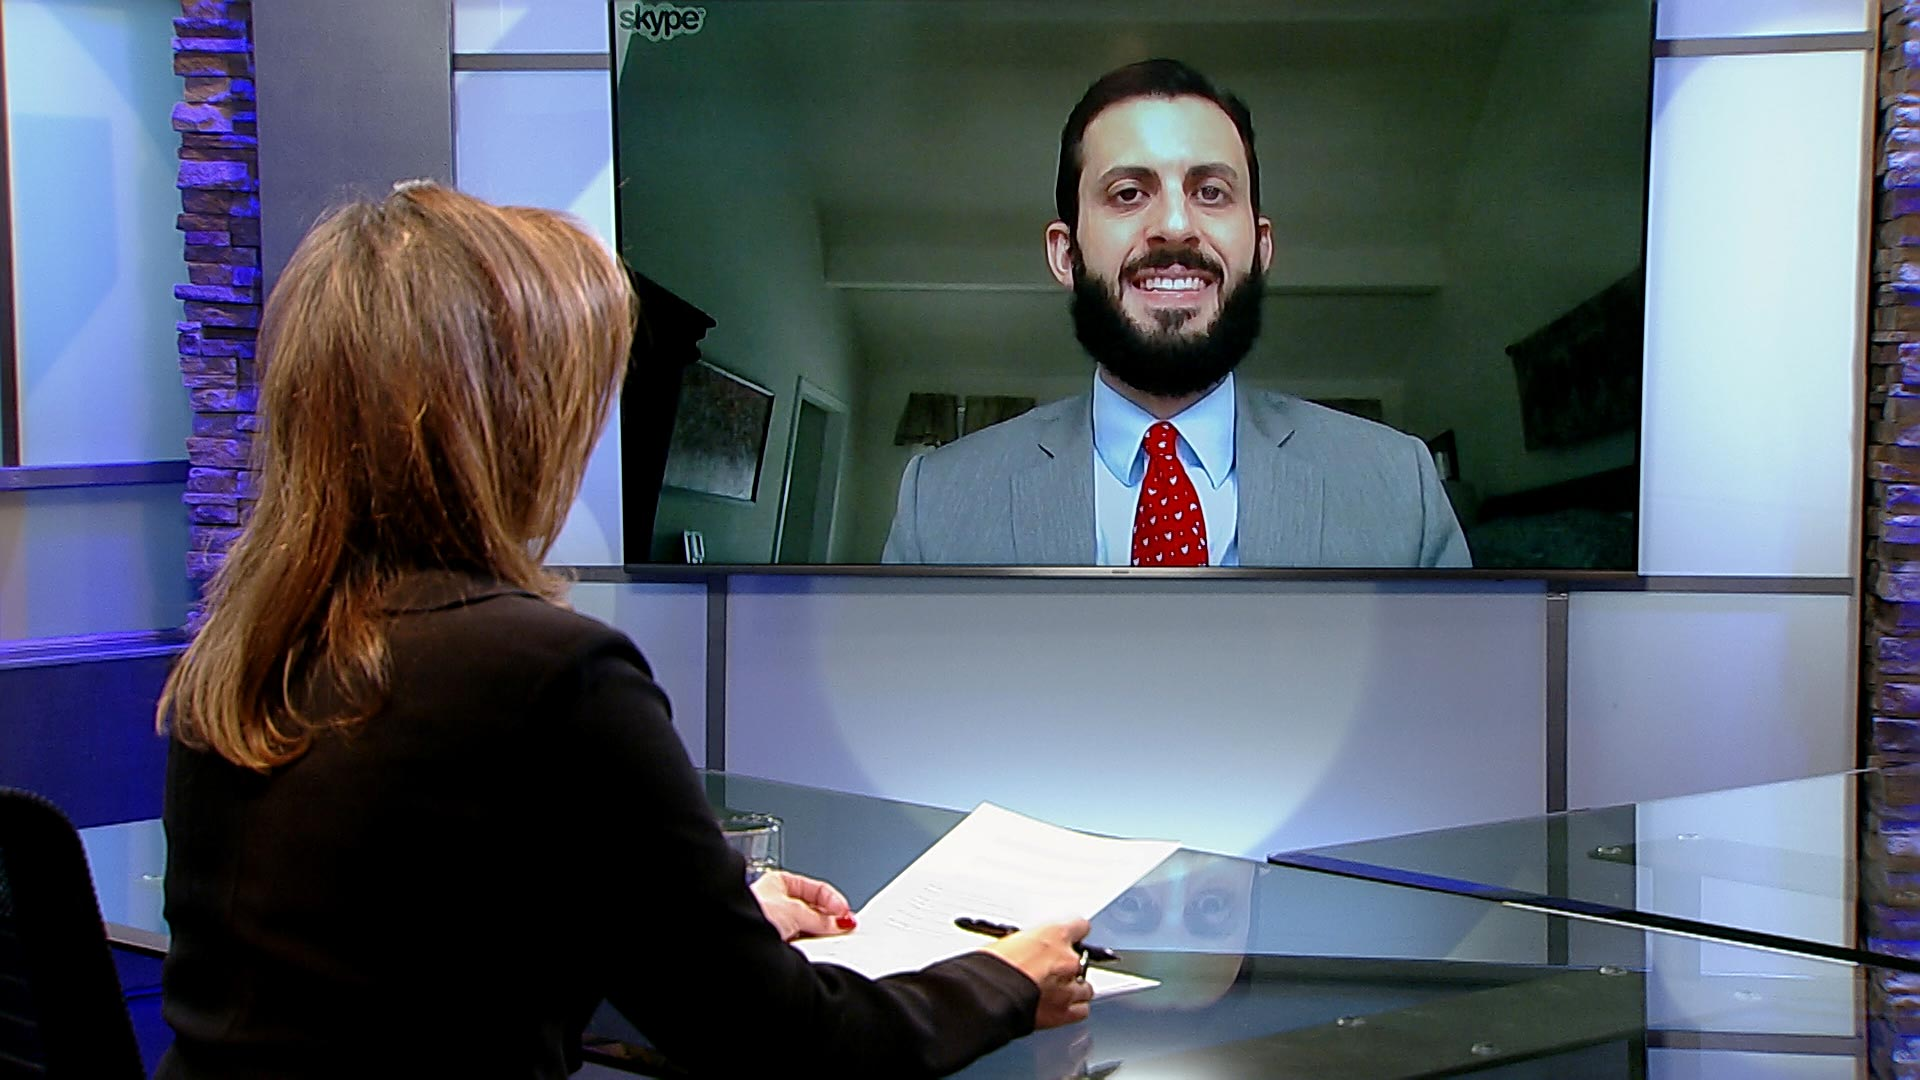 Alex Nowrasteh, senior immigration political analyst at the Cato Institute, speaks to Arizona 360 host Lorraine Rivera via Skype.